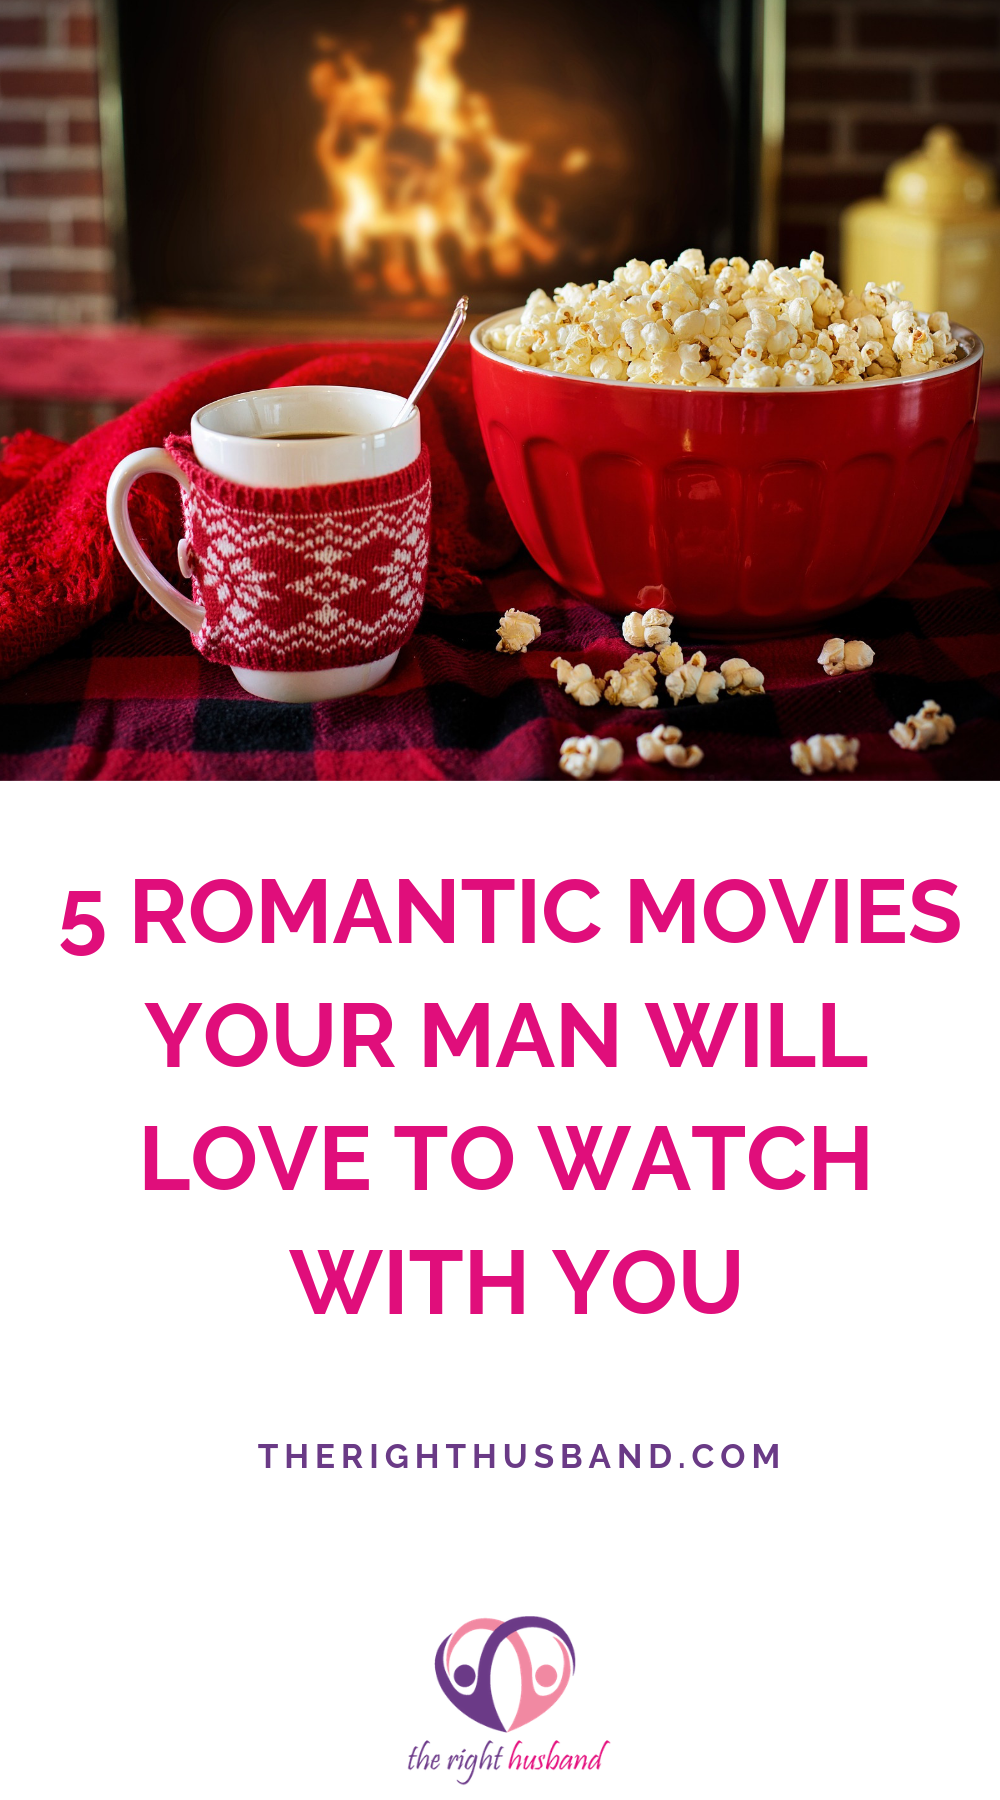 5 romantic movies 1